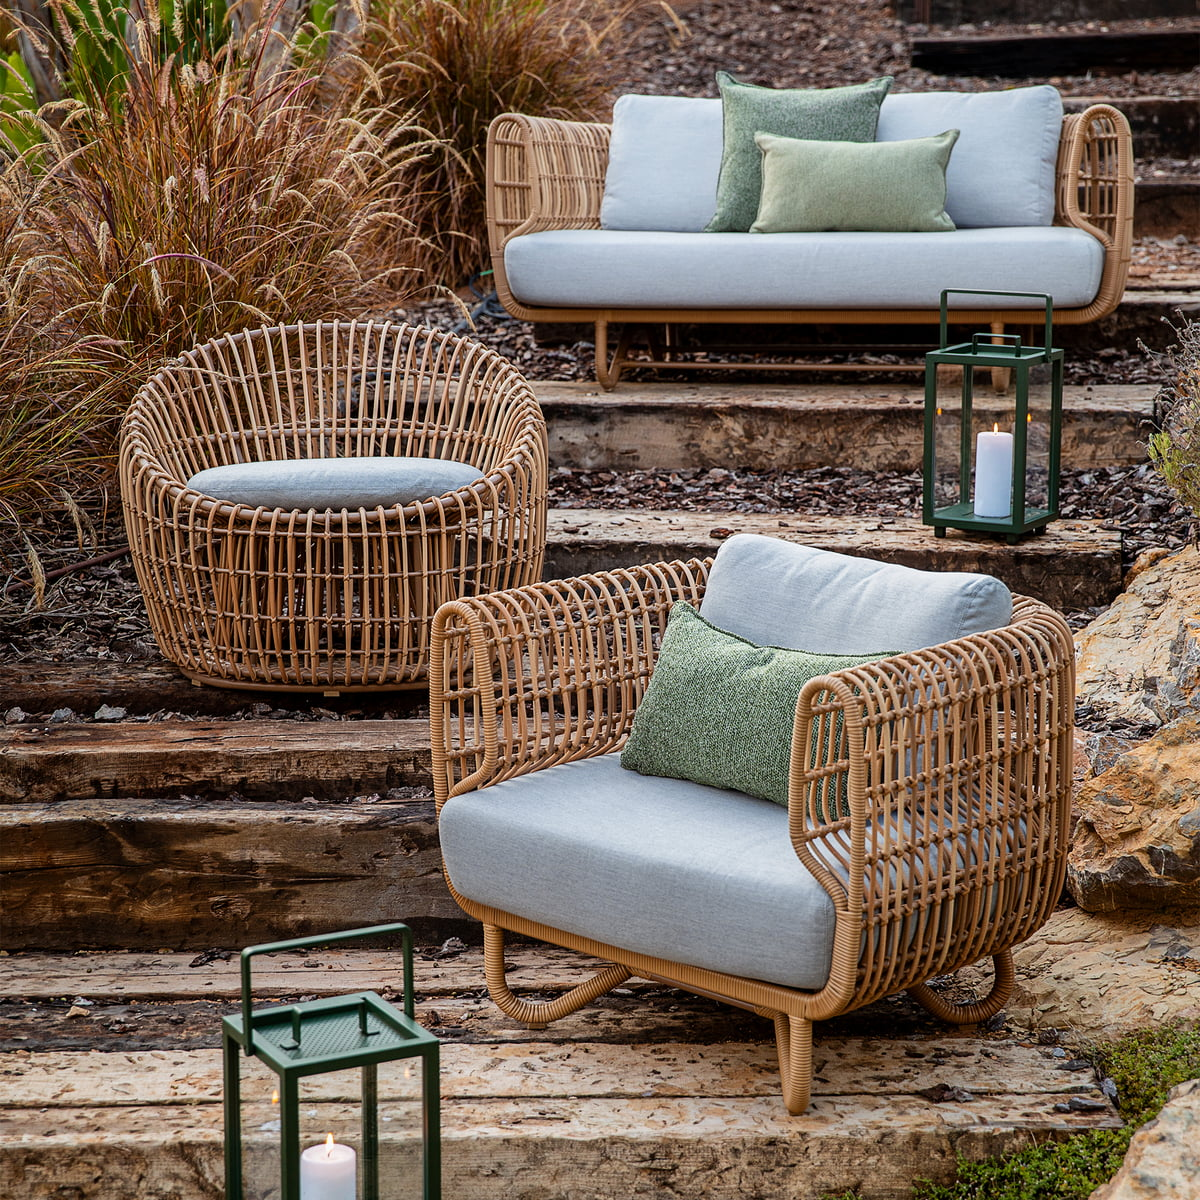 Cane Line Nest Lounge Chair Outdoor